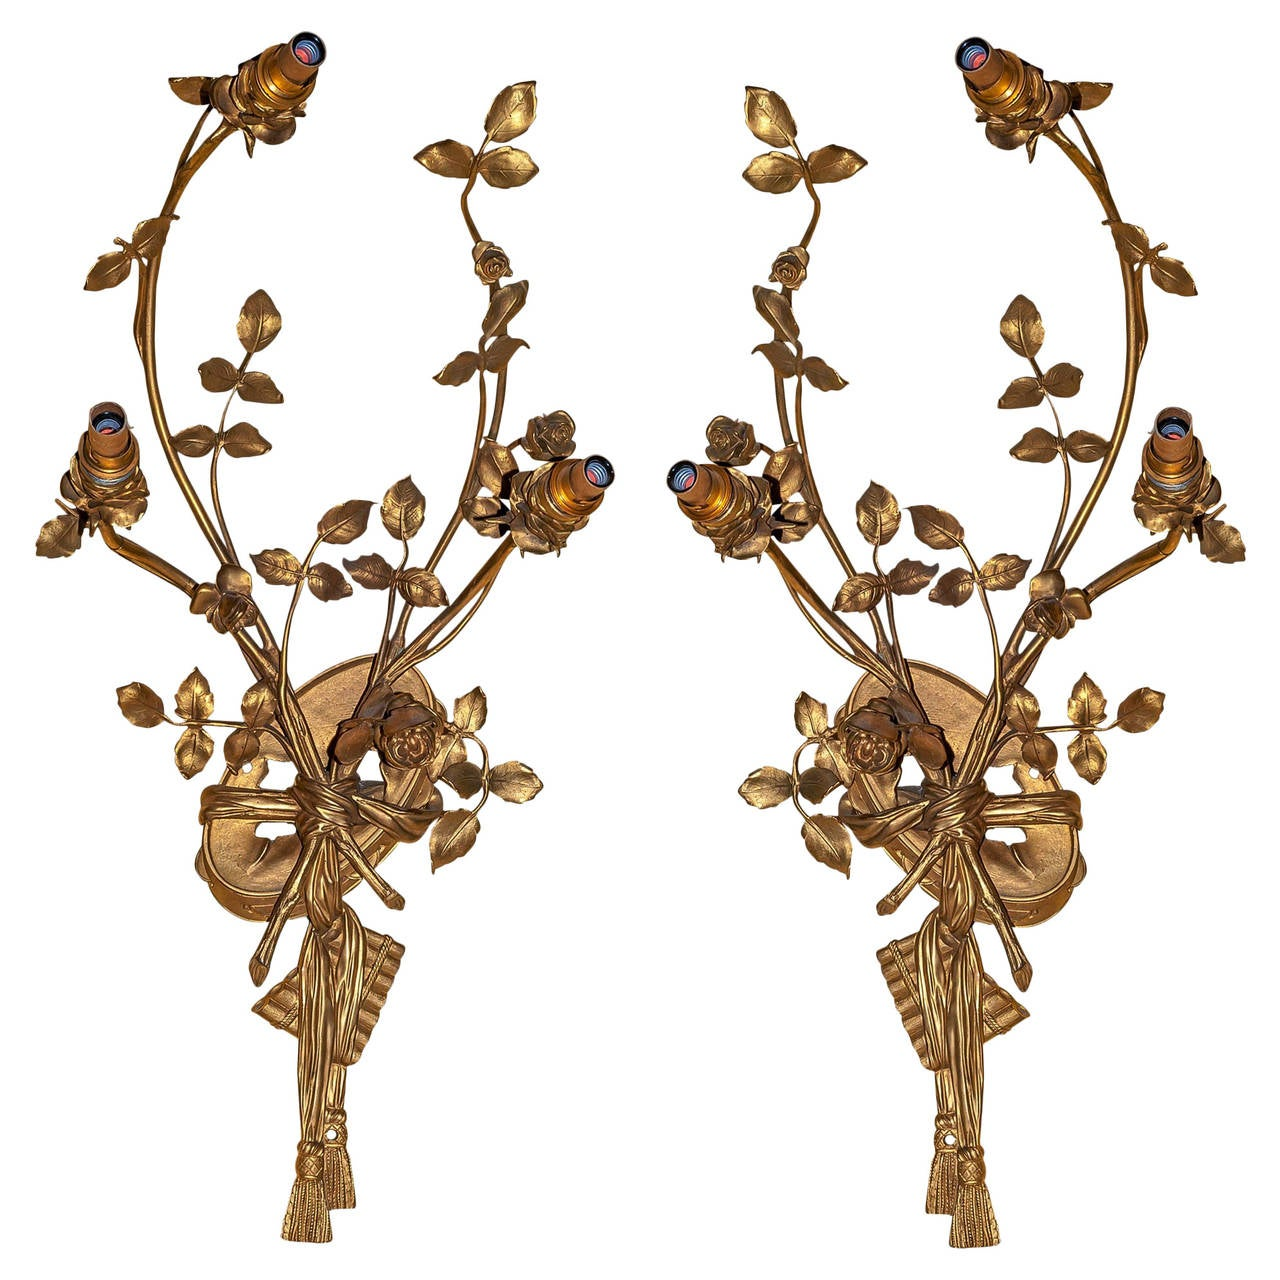 Pair of Louis XV Style Gilt Bronze Musical Motif Wall Light Sconces